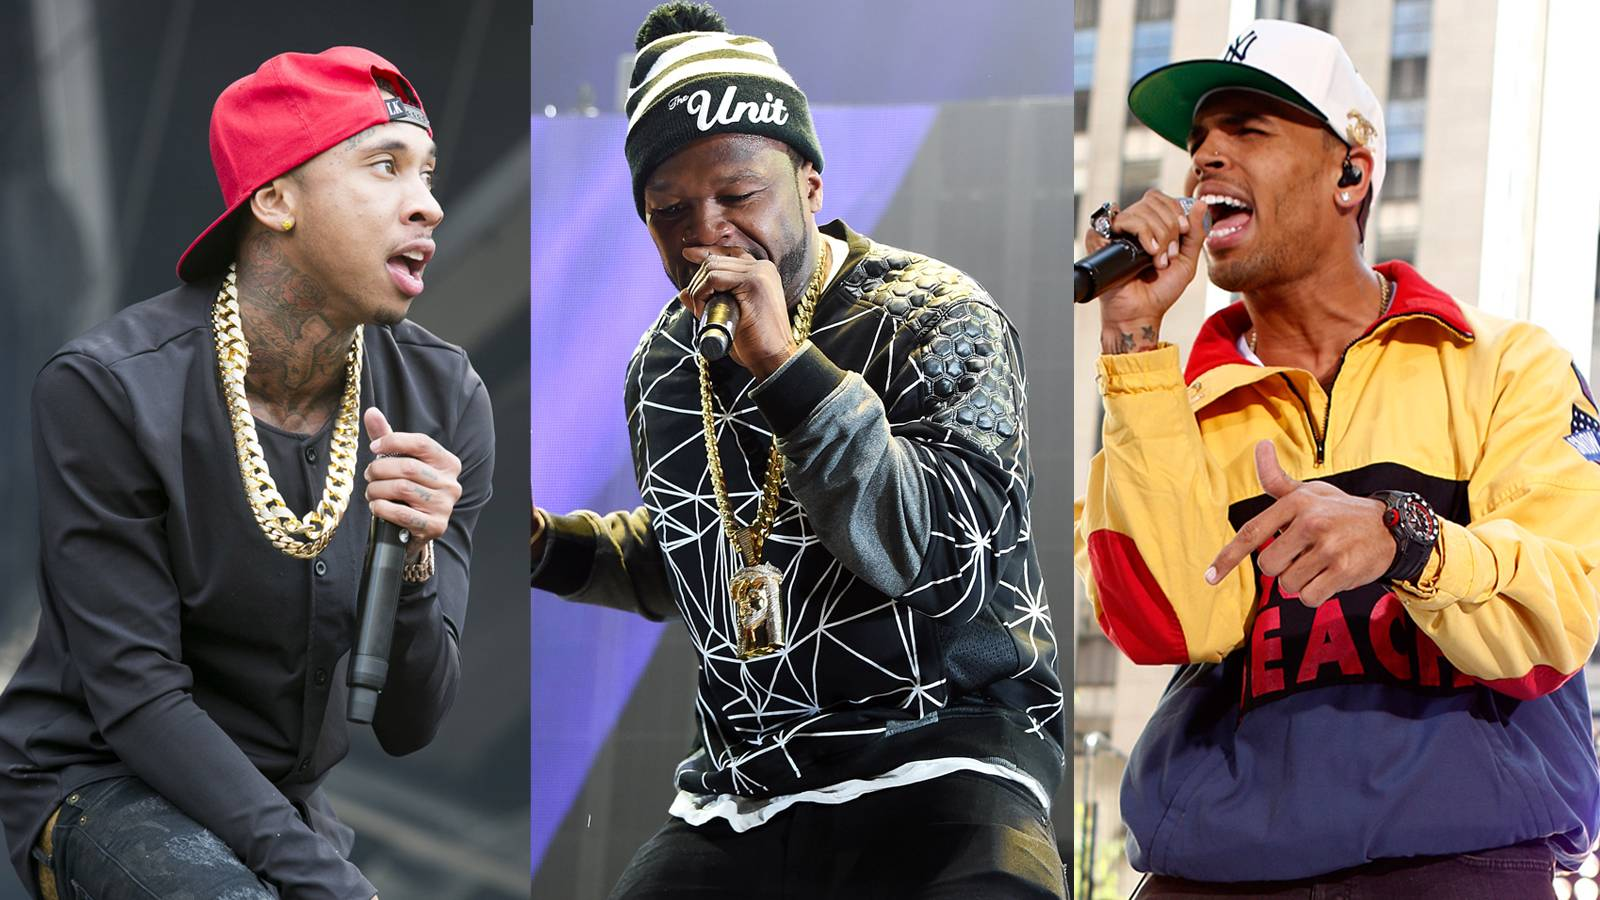 """'I Bet,' Featuring 50 Cent - Tyga and Chris swap out Dwayne for Curtis and continue on their mission of tossing disloyal playmates. Fif has no problem filling the slot as he rhymes about being chose. """"It's not a thing for me... /We from different sets, why your b***h wanna bang with me? /All the time, all the time, I be on the grind /H**s look at me, the dollar signs run across they mind.""""(Photos from left: Helen Boast/Redferns via Getty Images, Theo Wargo/Getty Images for Live Nation, Peter Kramer/NBC/NBC NewsWire)"""